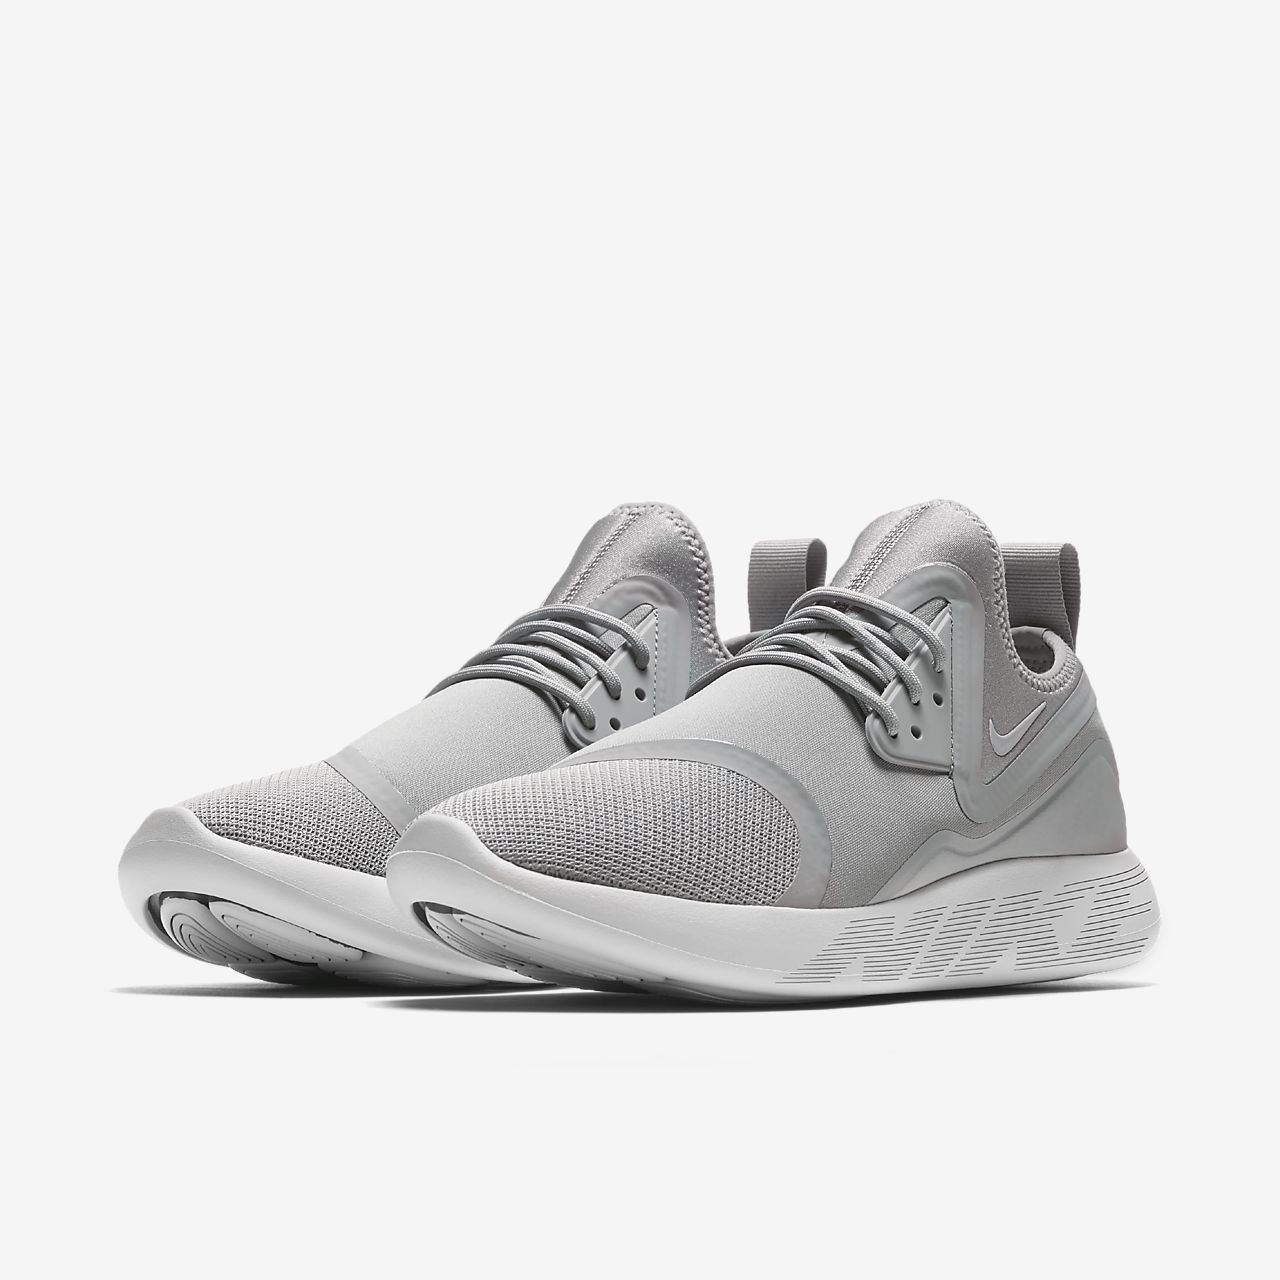 93f124e4d0b chaussure nike lunarcharge